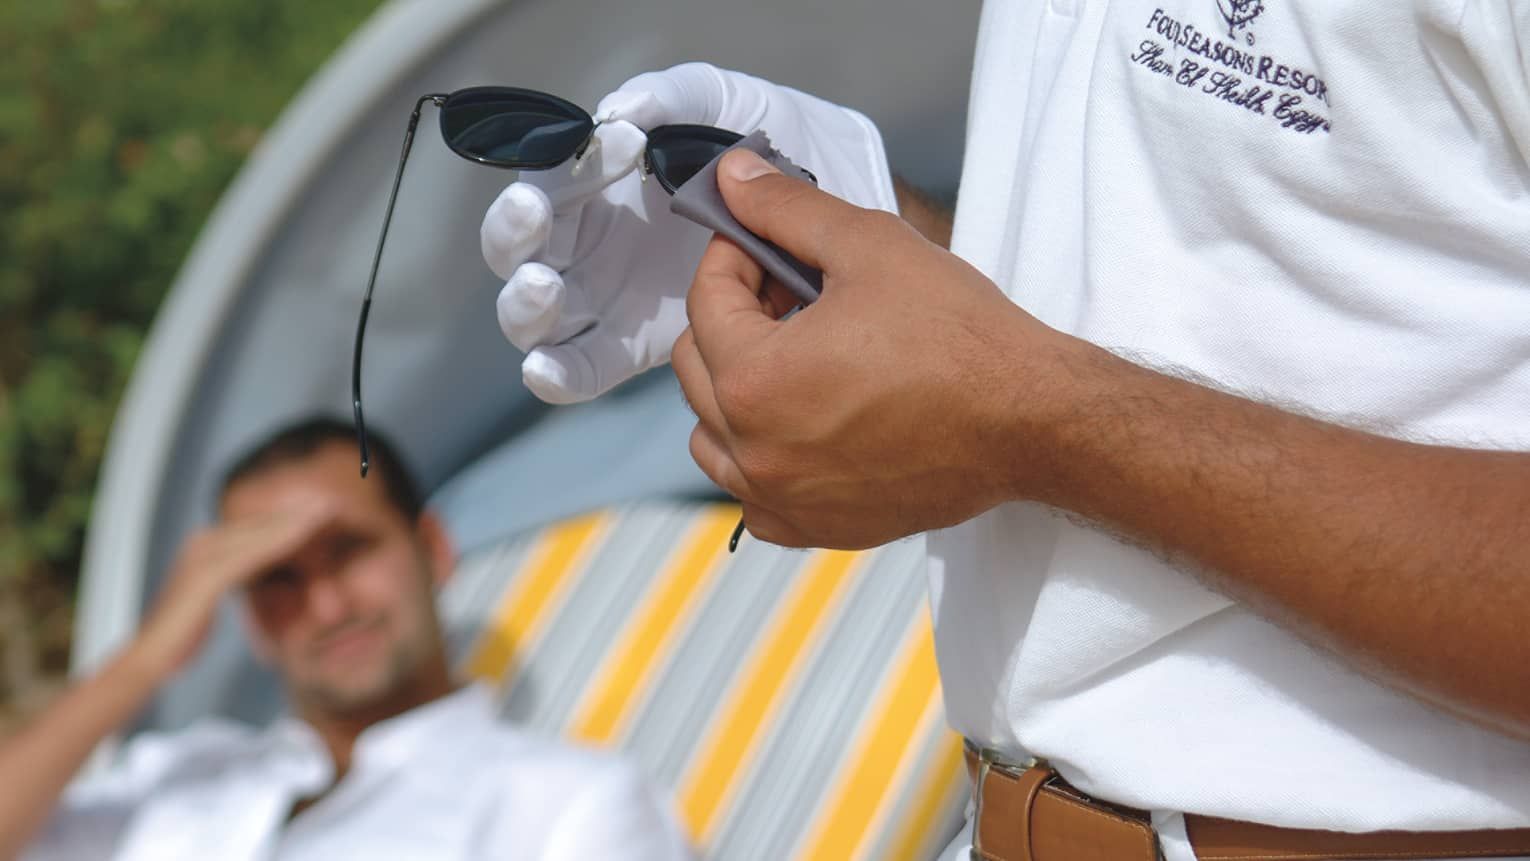 Close-up of hands, one with white glove, cleaning black sunglasses